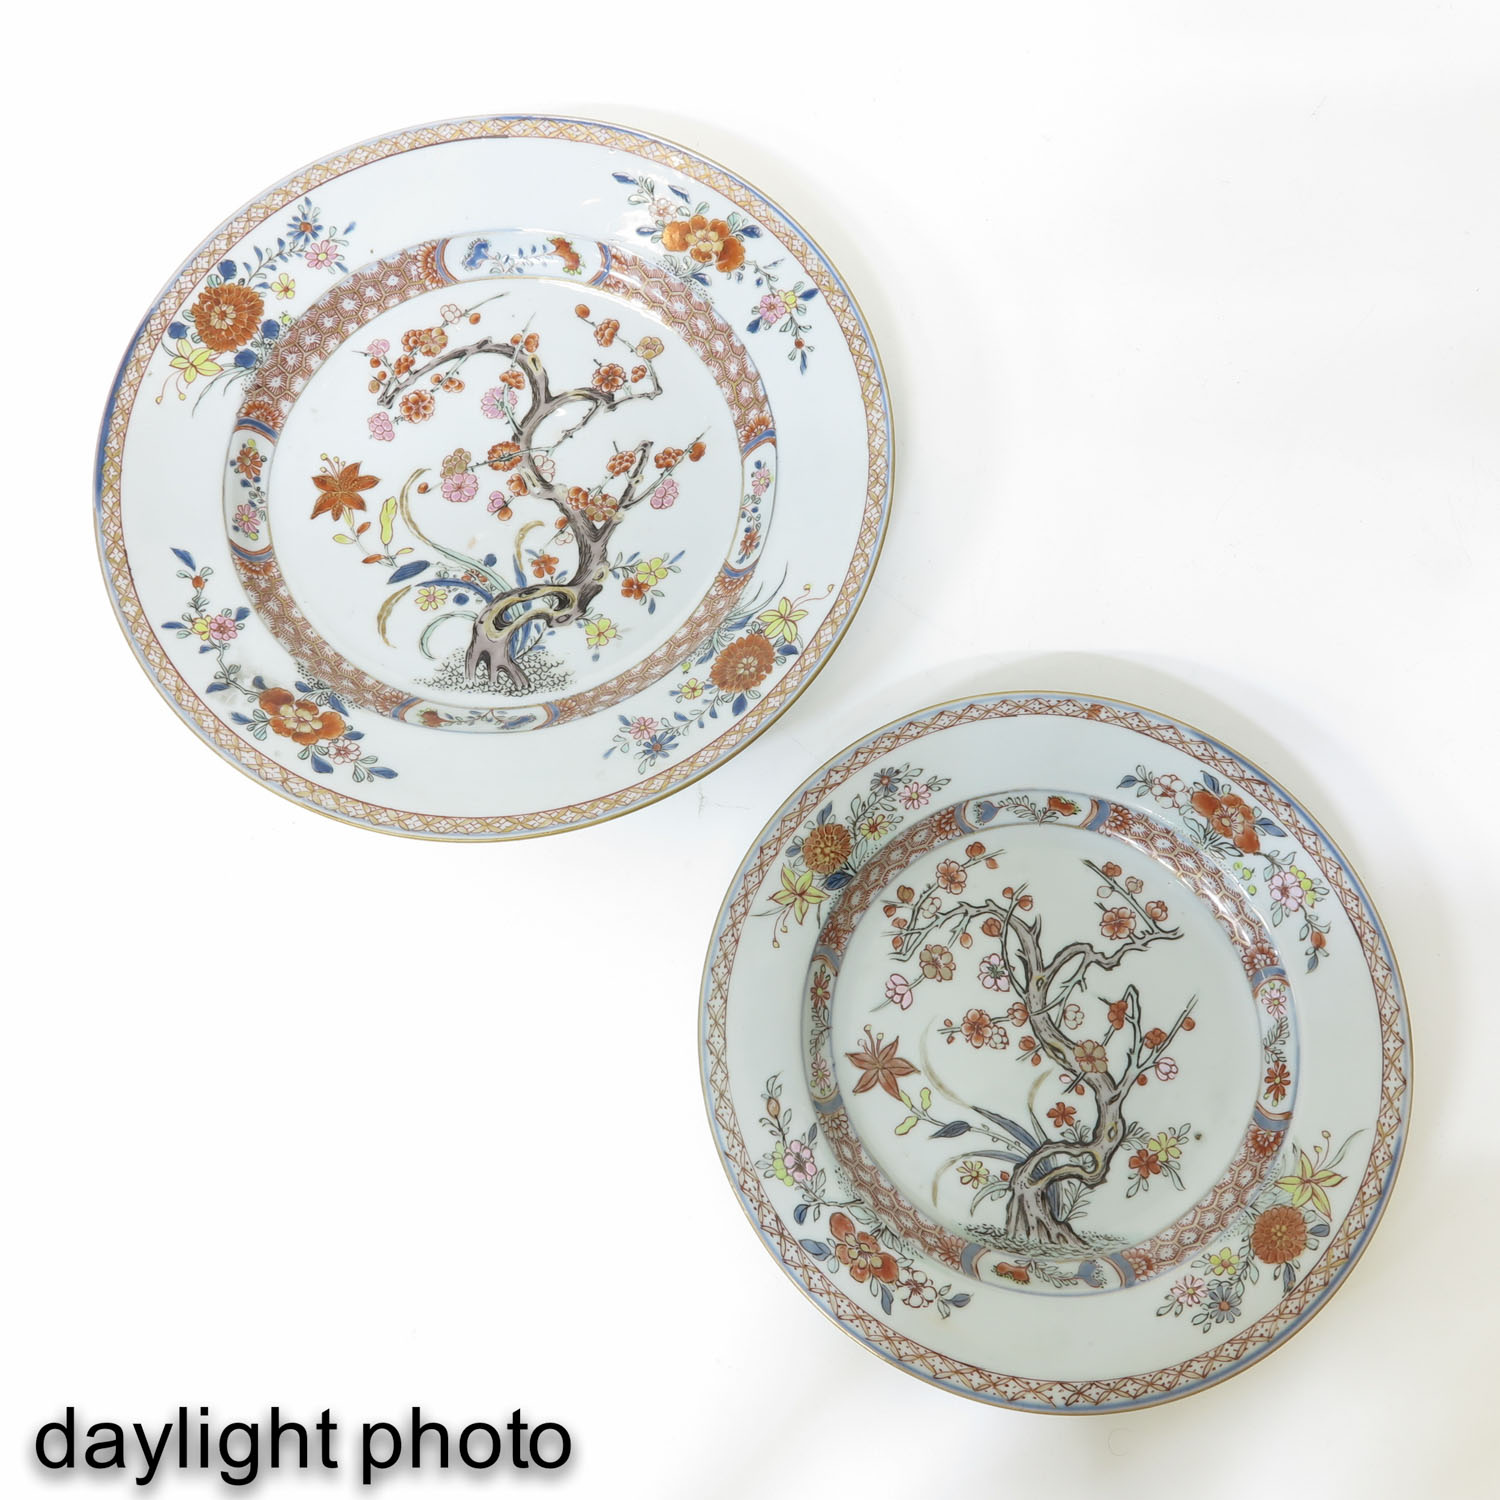 A Collection of 6 Polychrome Decor Plates - Image 7 of 9